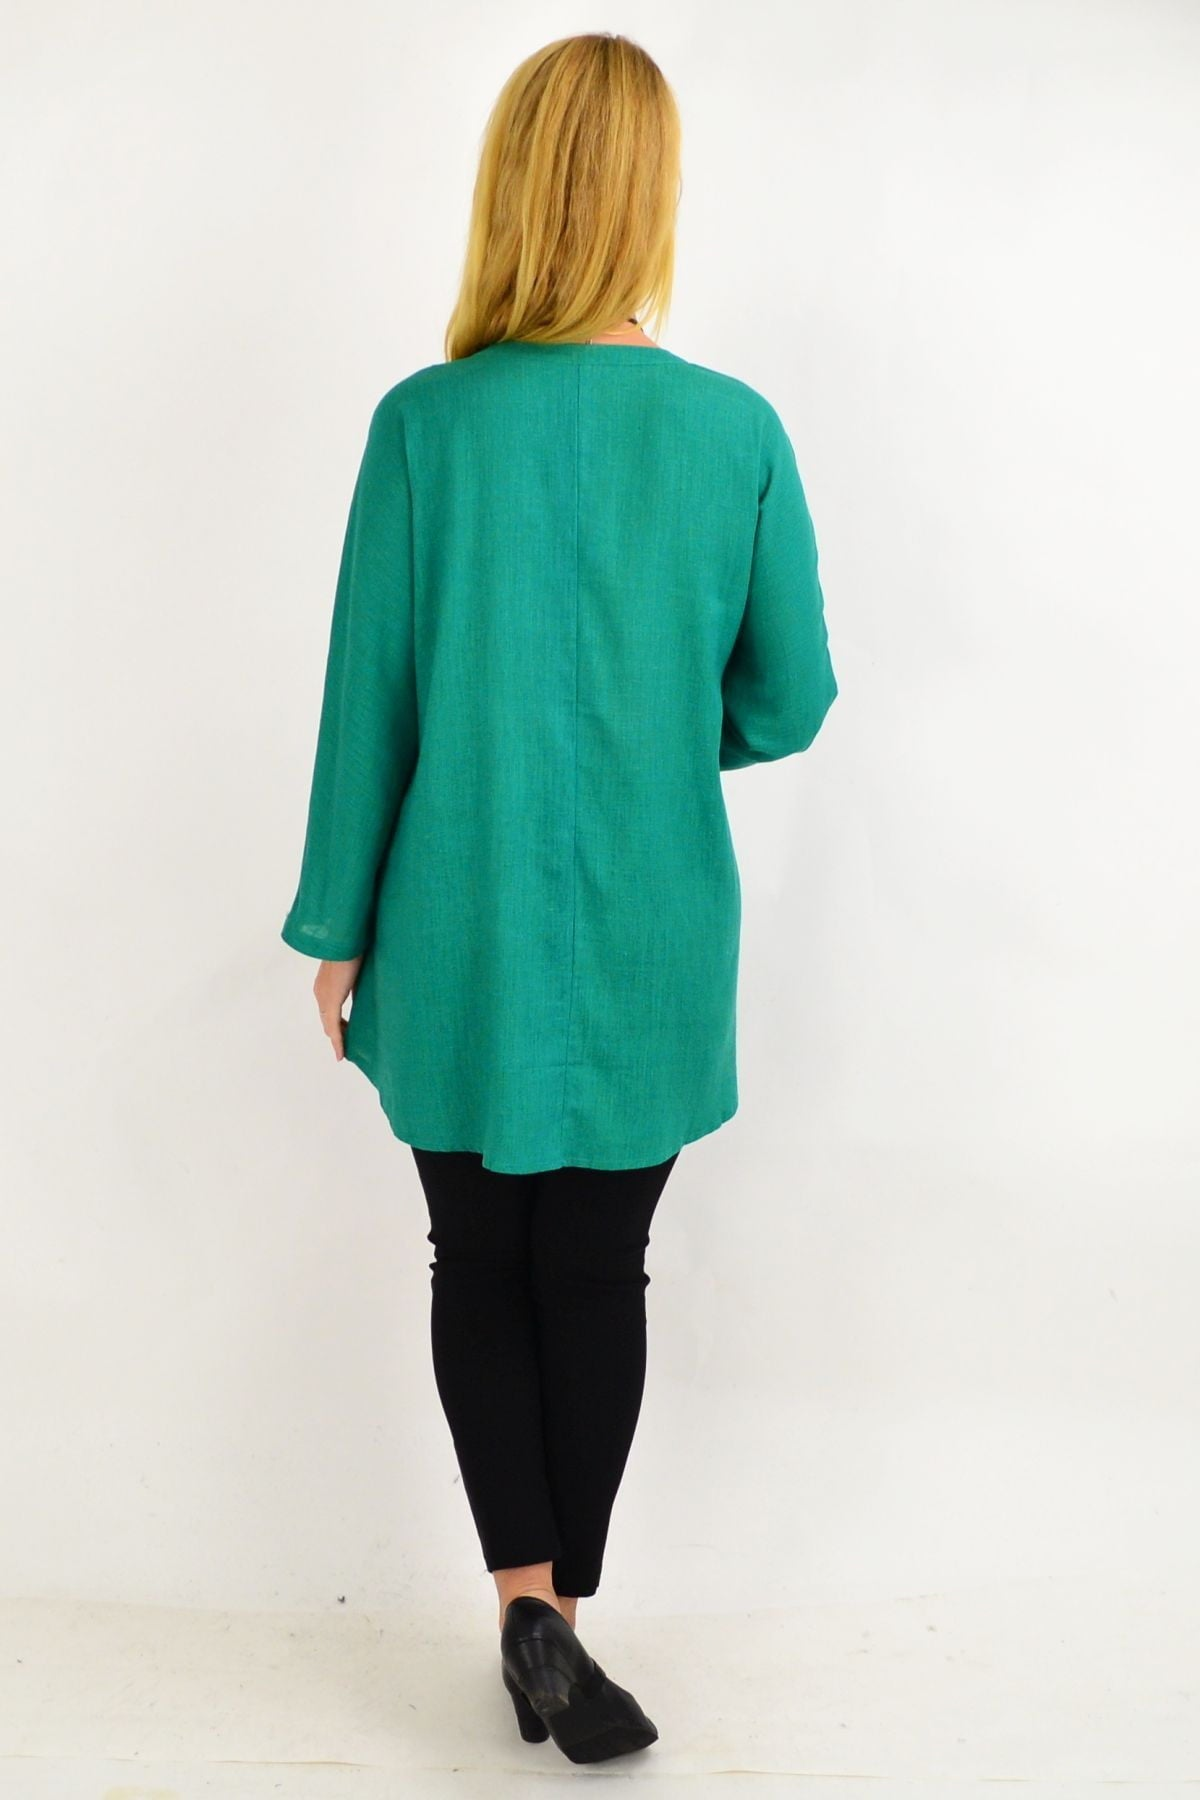 Green V Neck Linen Tunic Shirt | I Love Tunics | Tunic Tops | Tunic | Tunic Dresses  | womens clothing online